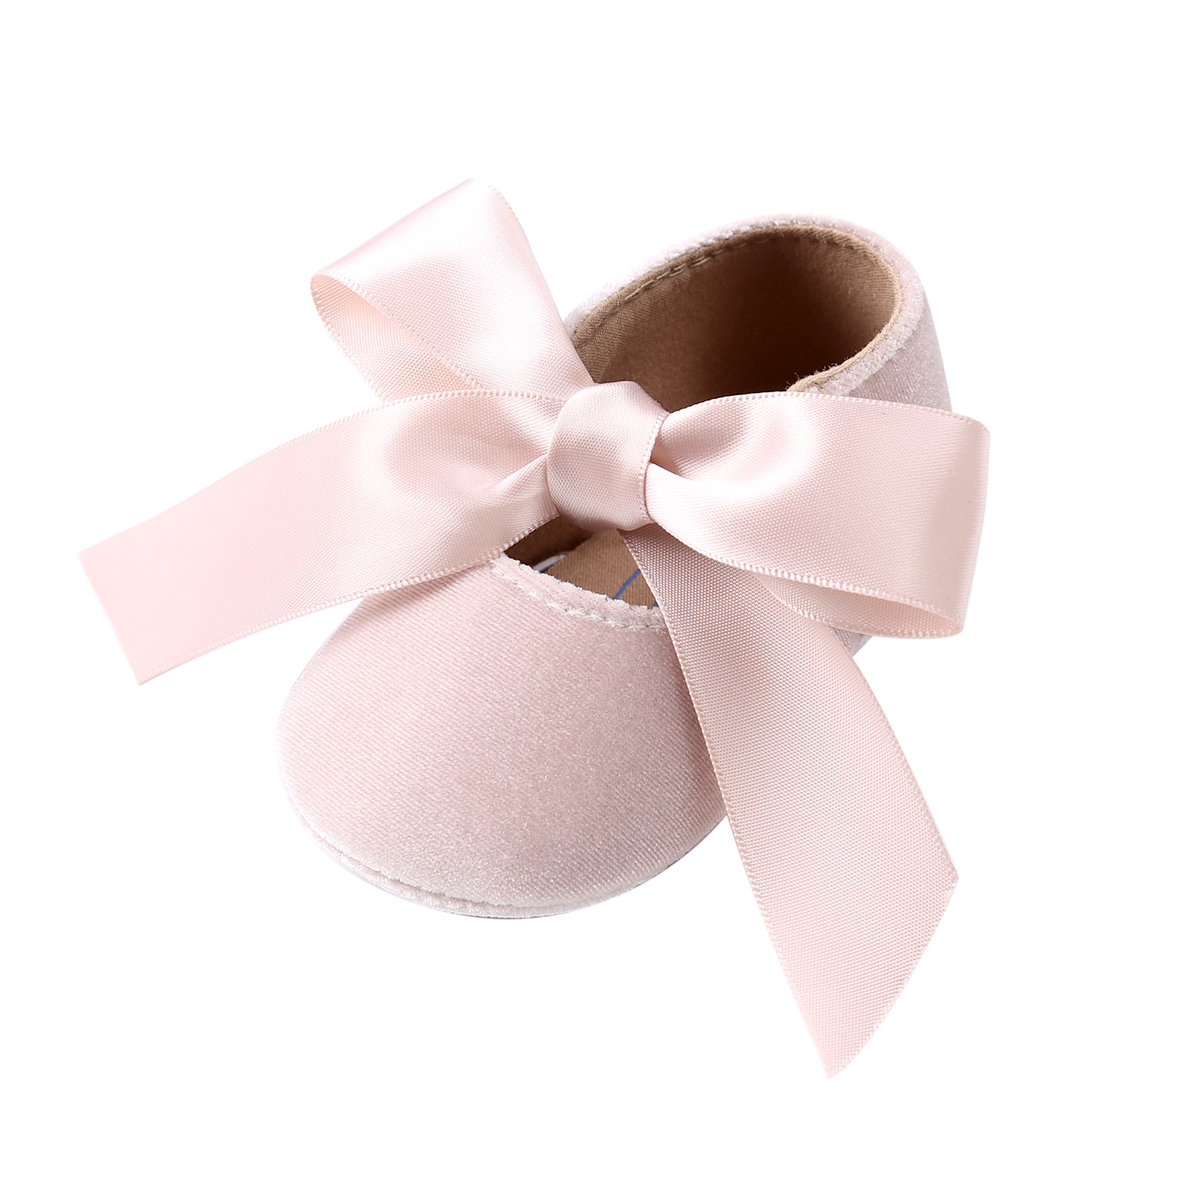 Tutoo Baby Girls' Party Shoes Newborn Soft Sole Walkers Shoes Infant Crib Shoes (4.7 (6-12 Months), A-Beige)